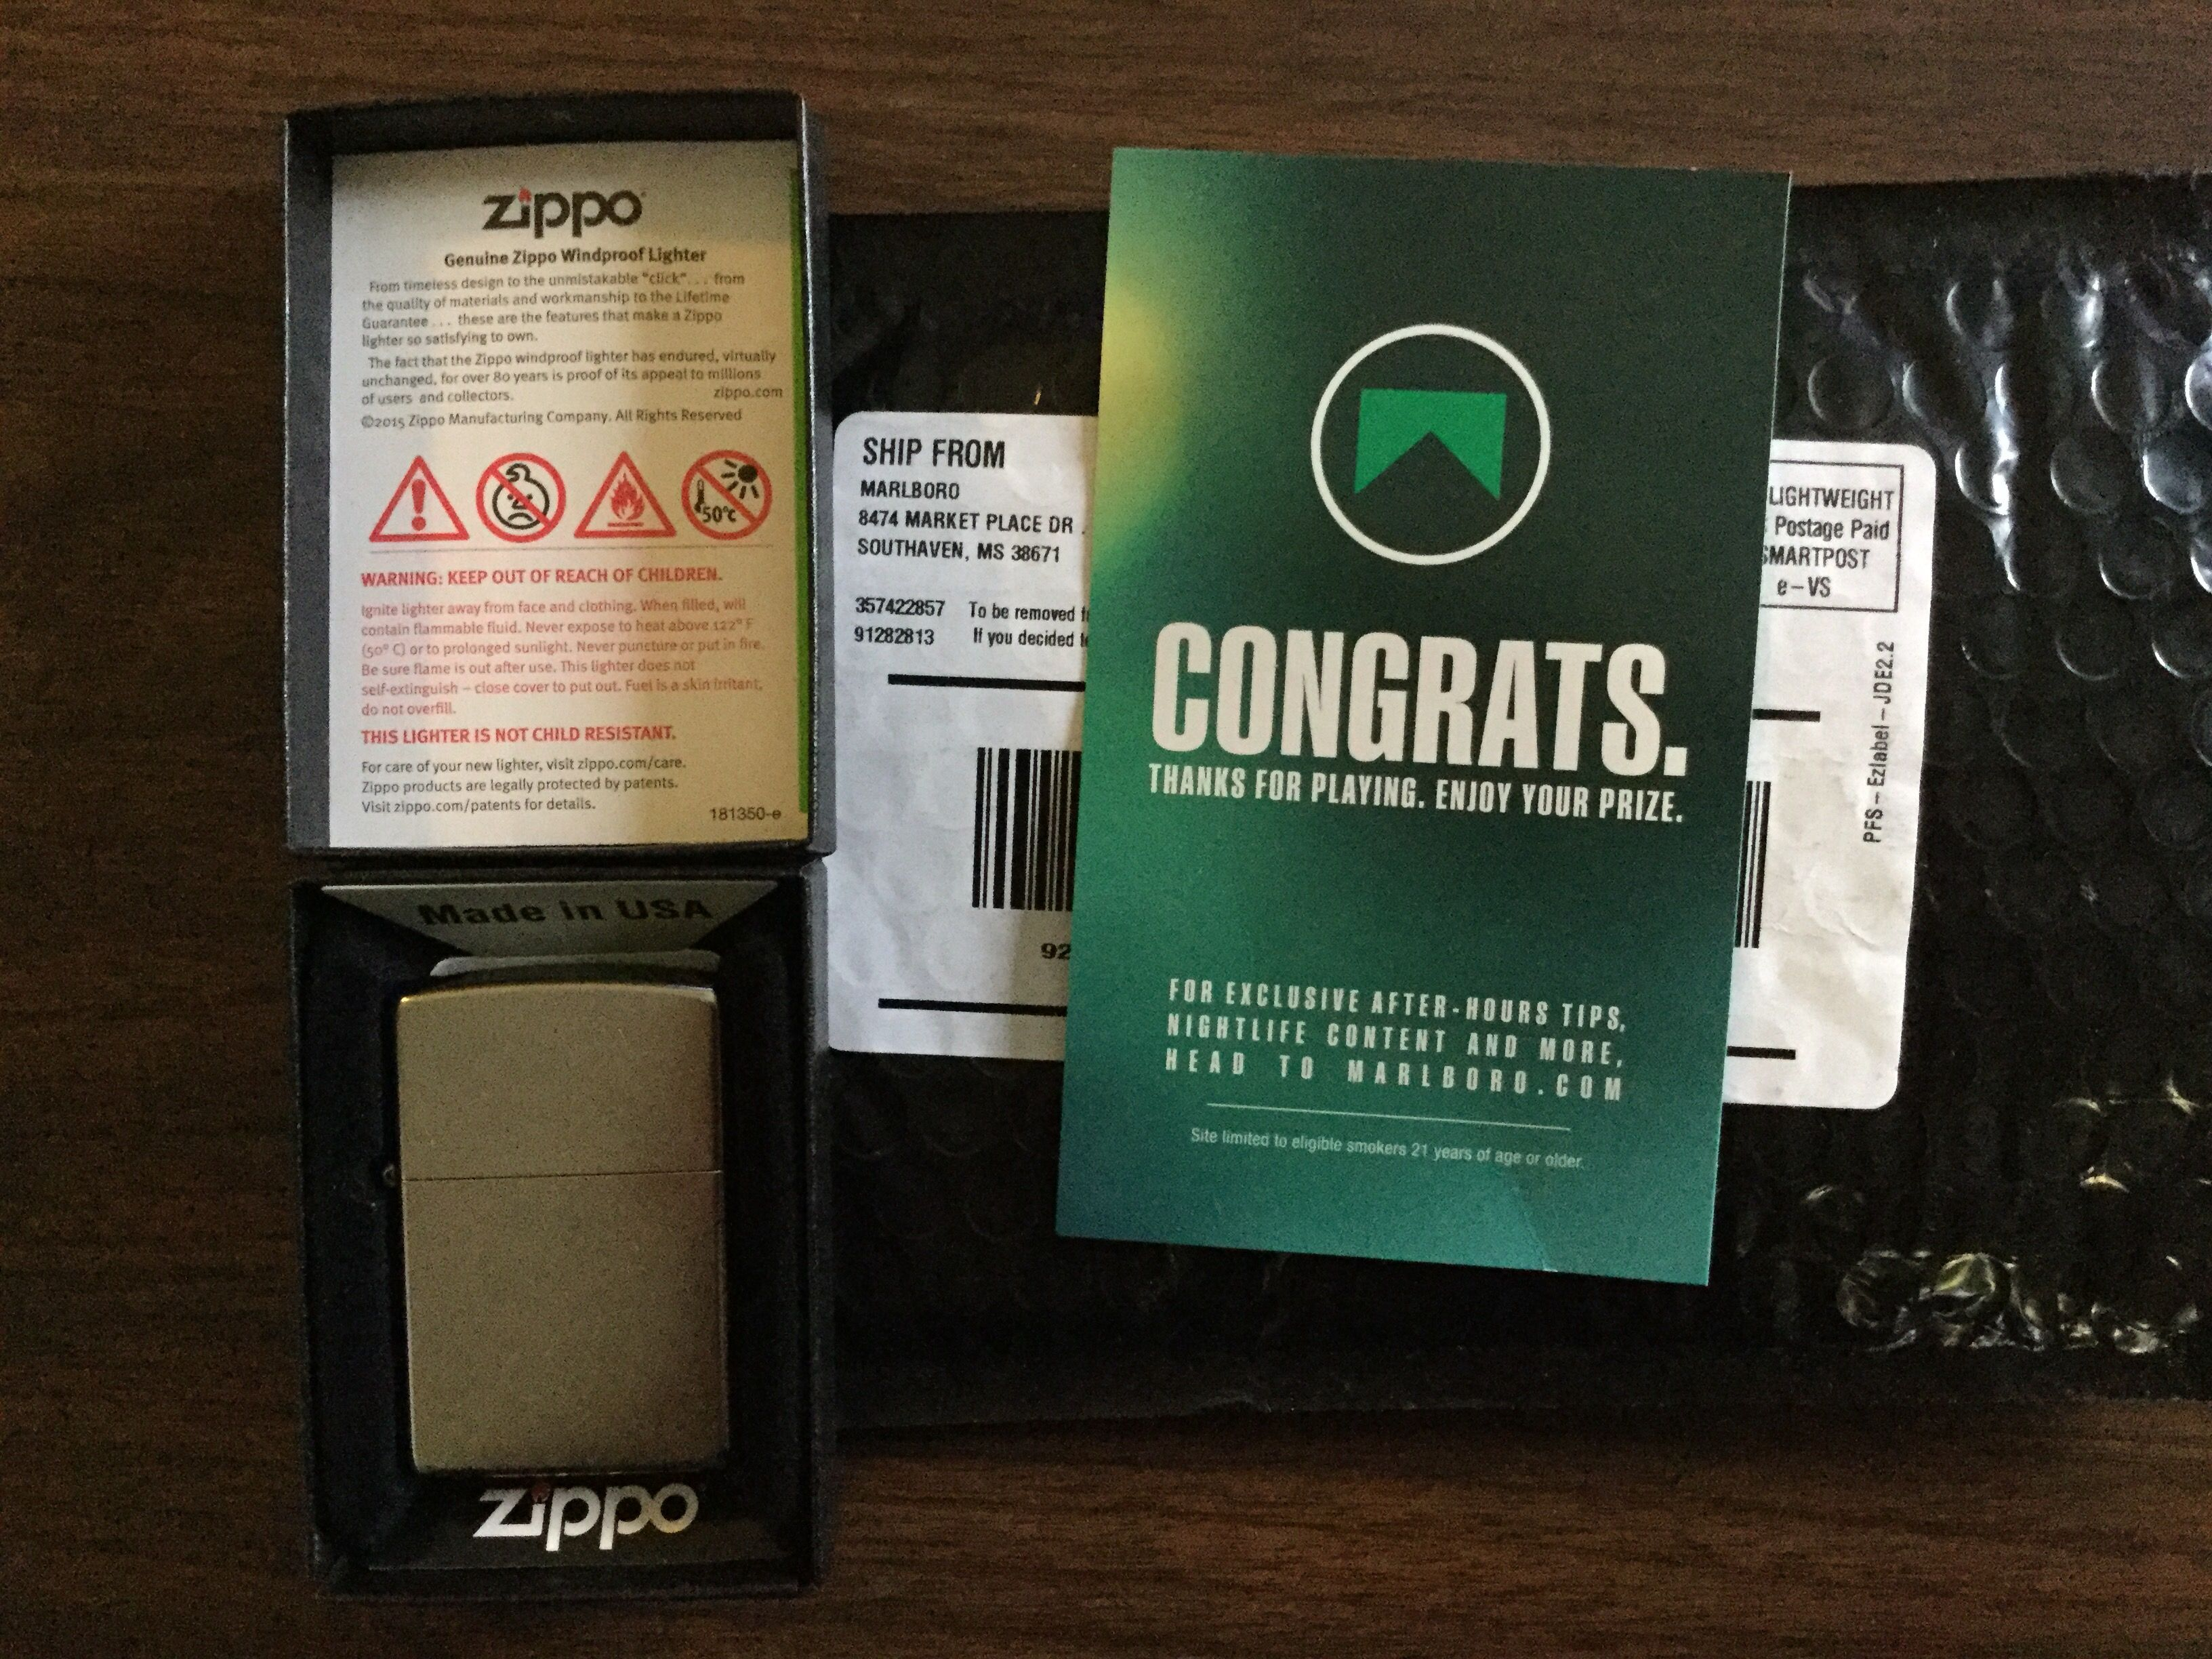 Winner of a Zippo lighter in the Marlboro Match Up Promotion ...